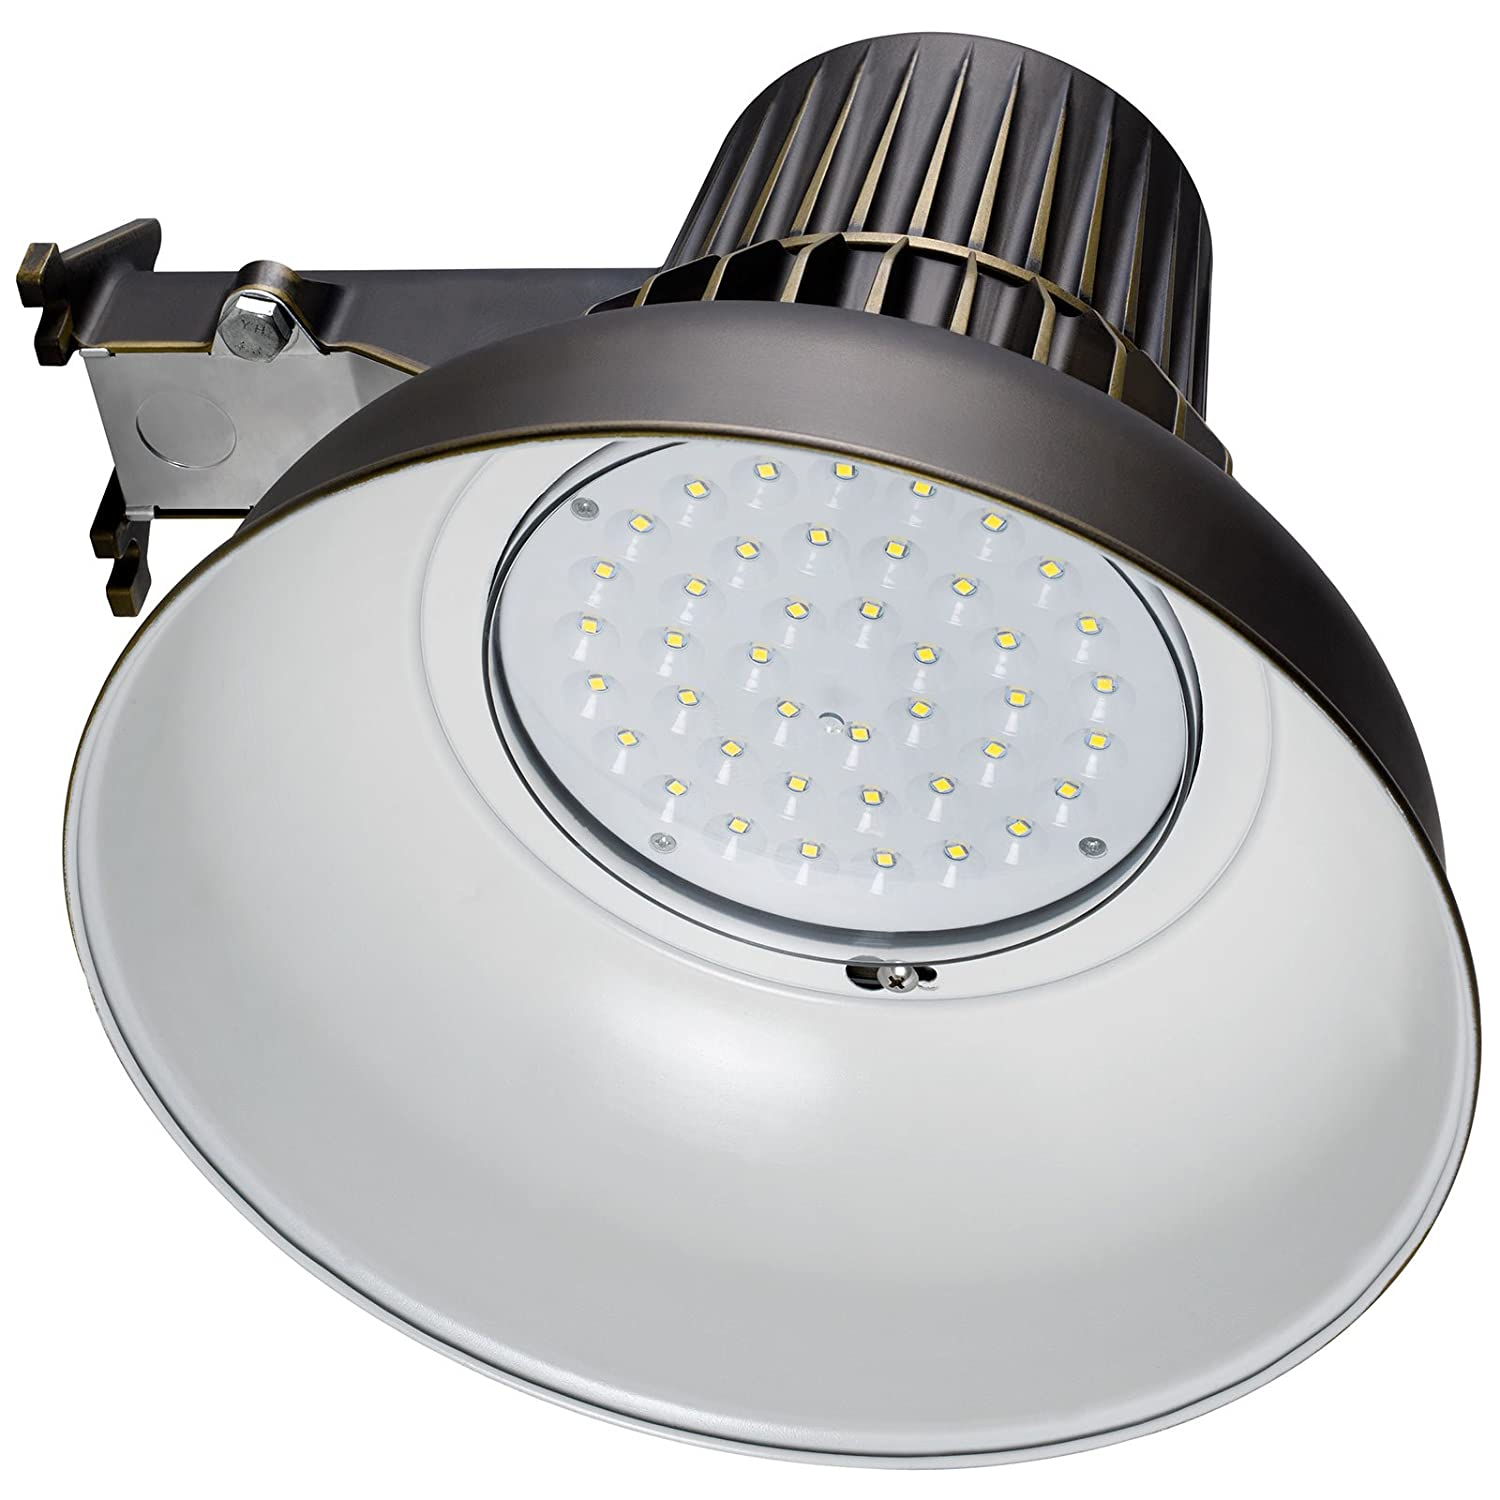 Dusk To Dawn Light Bulb Not Working: Honeywell MA0251 Led Utility Light 3500 Lumen Dusk To Dawn